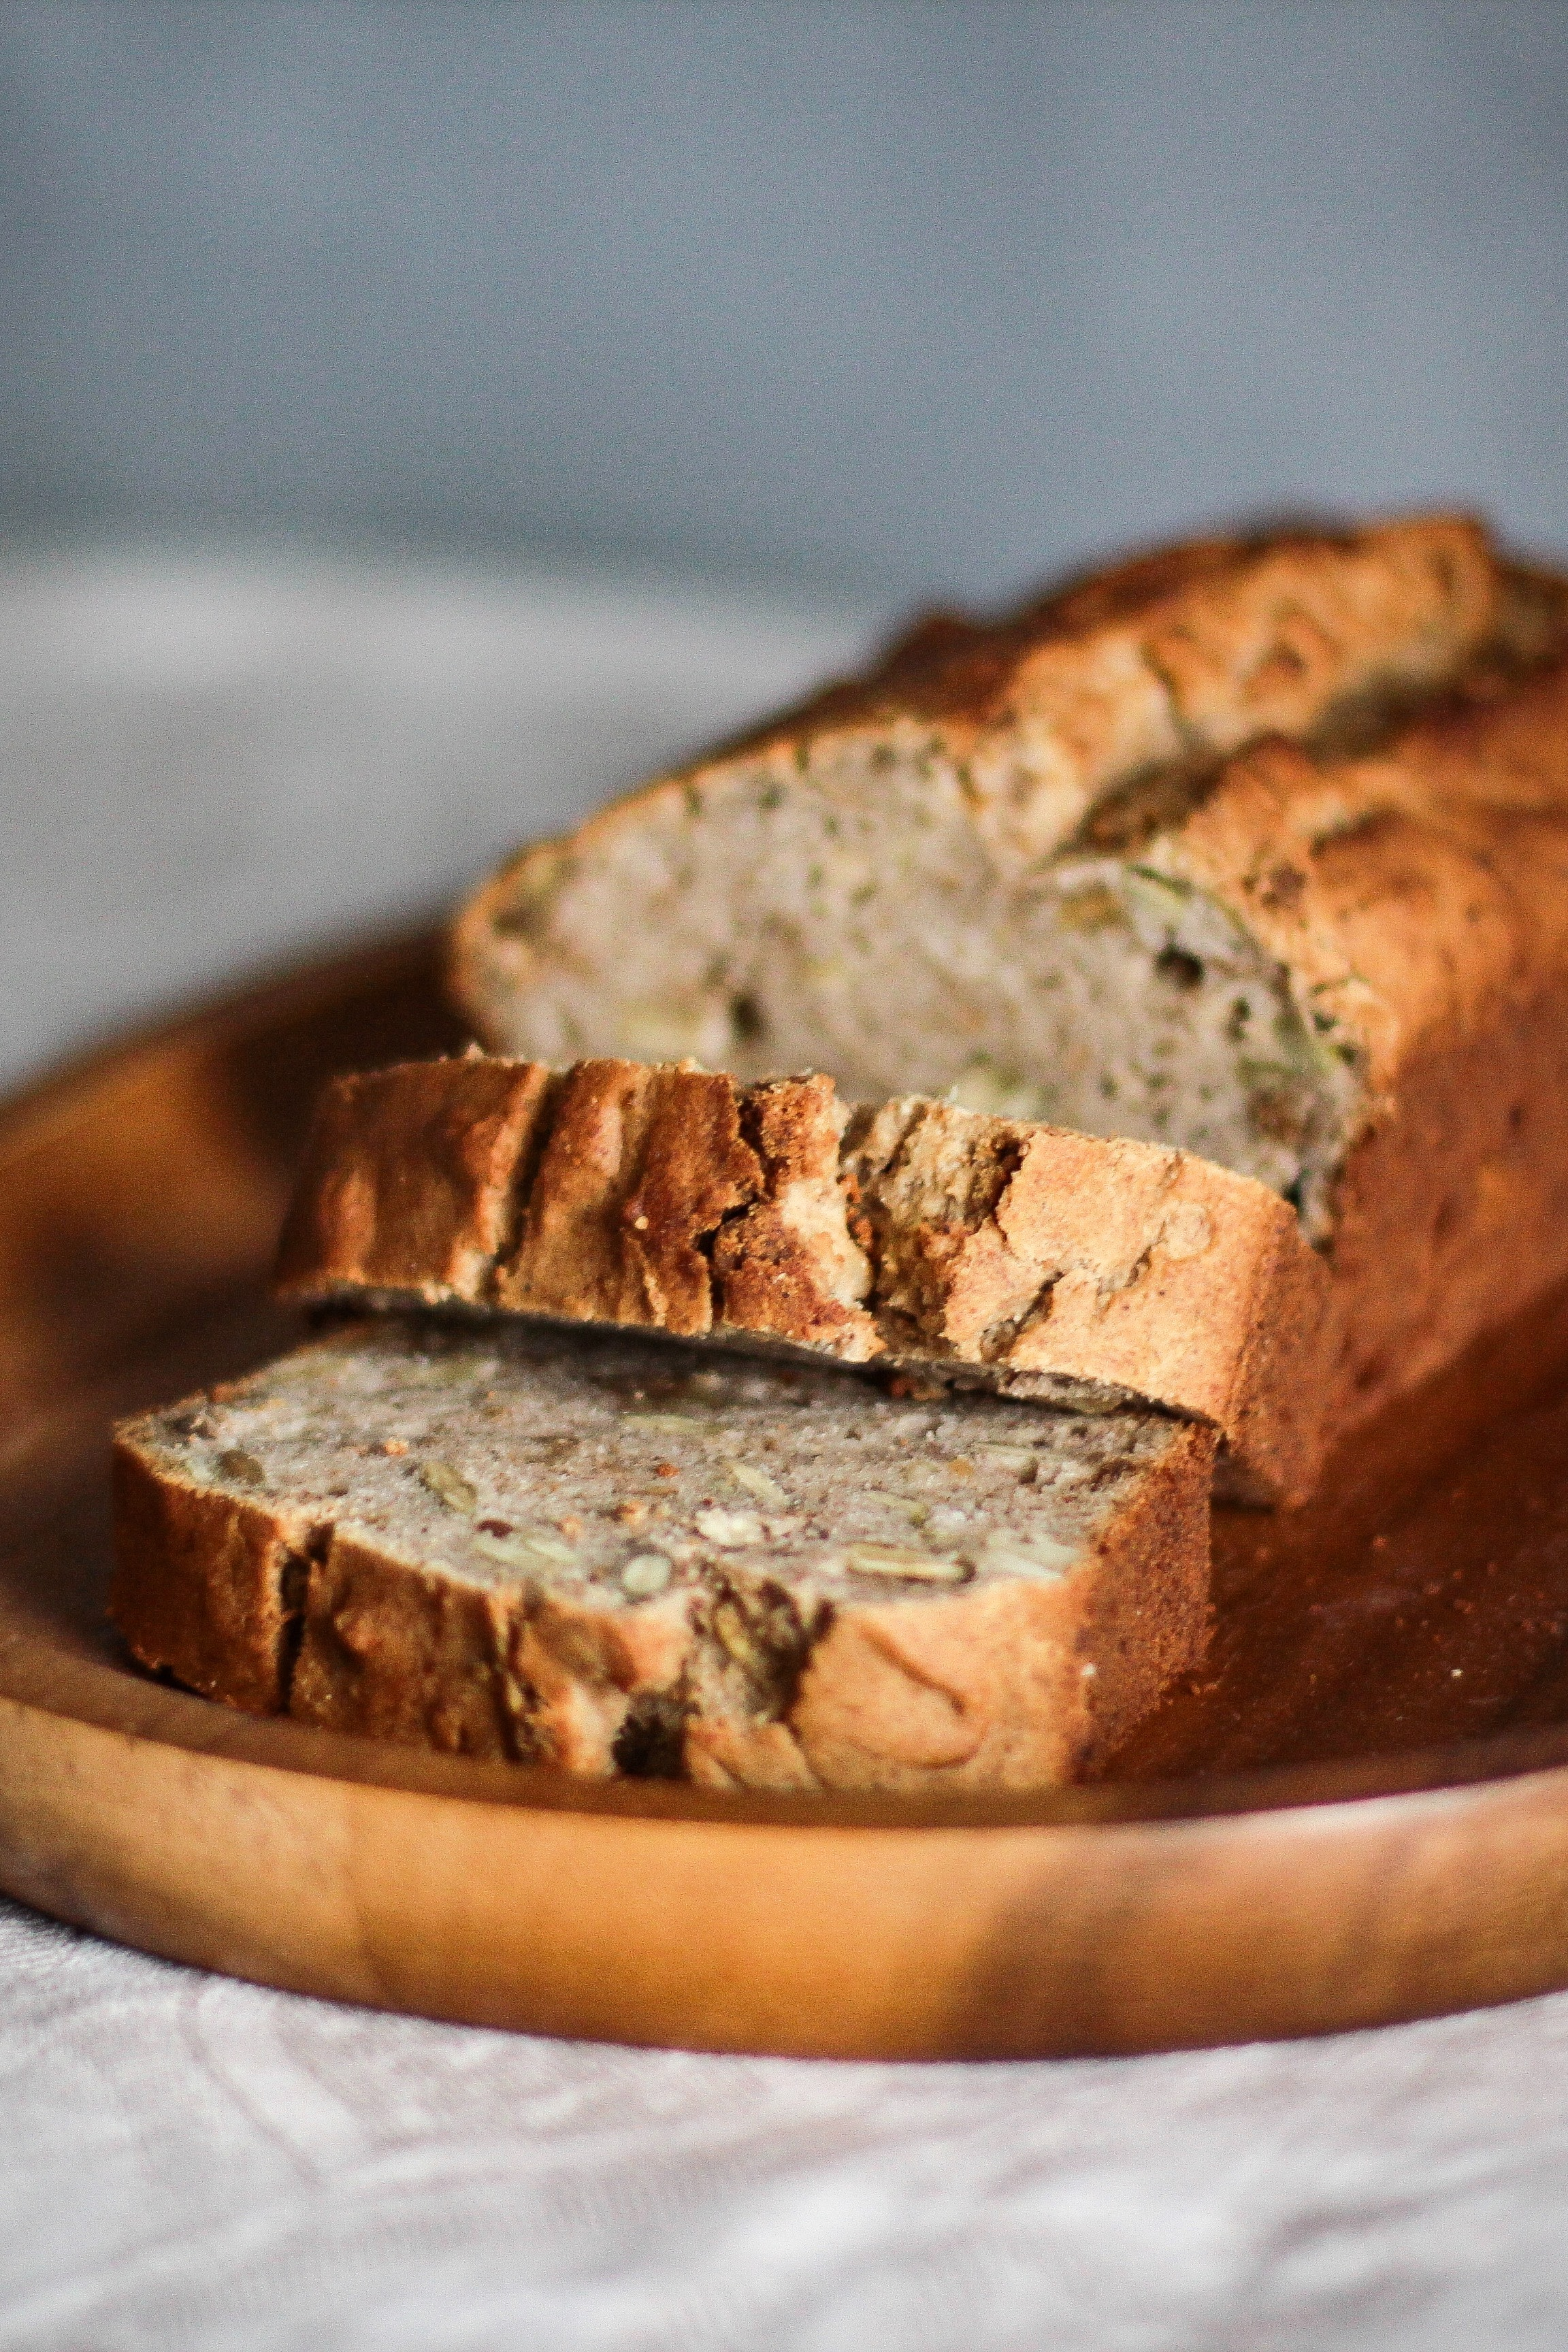 Beer bread with oats